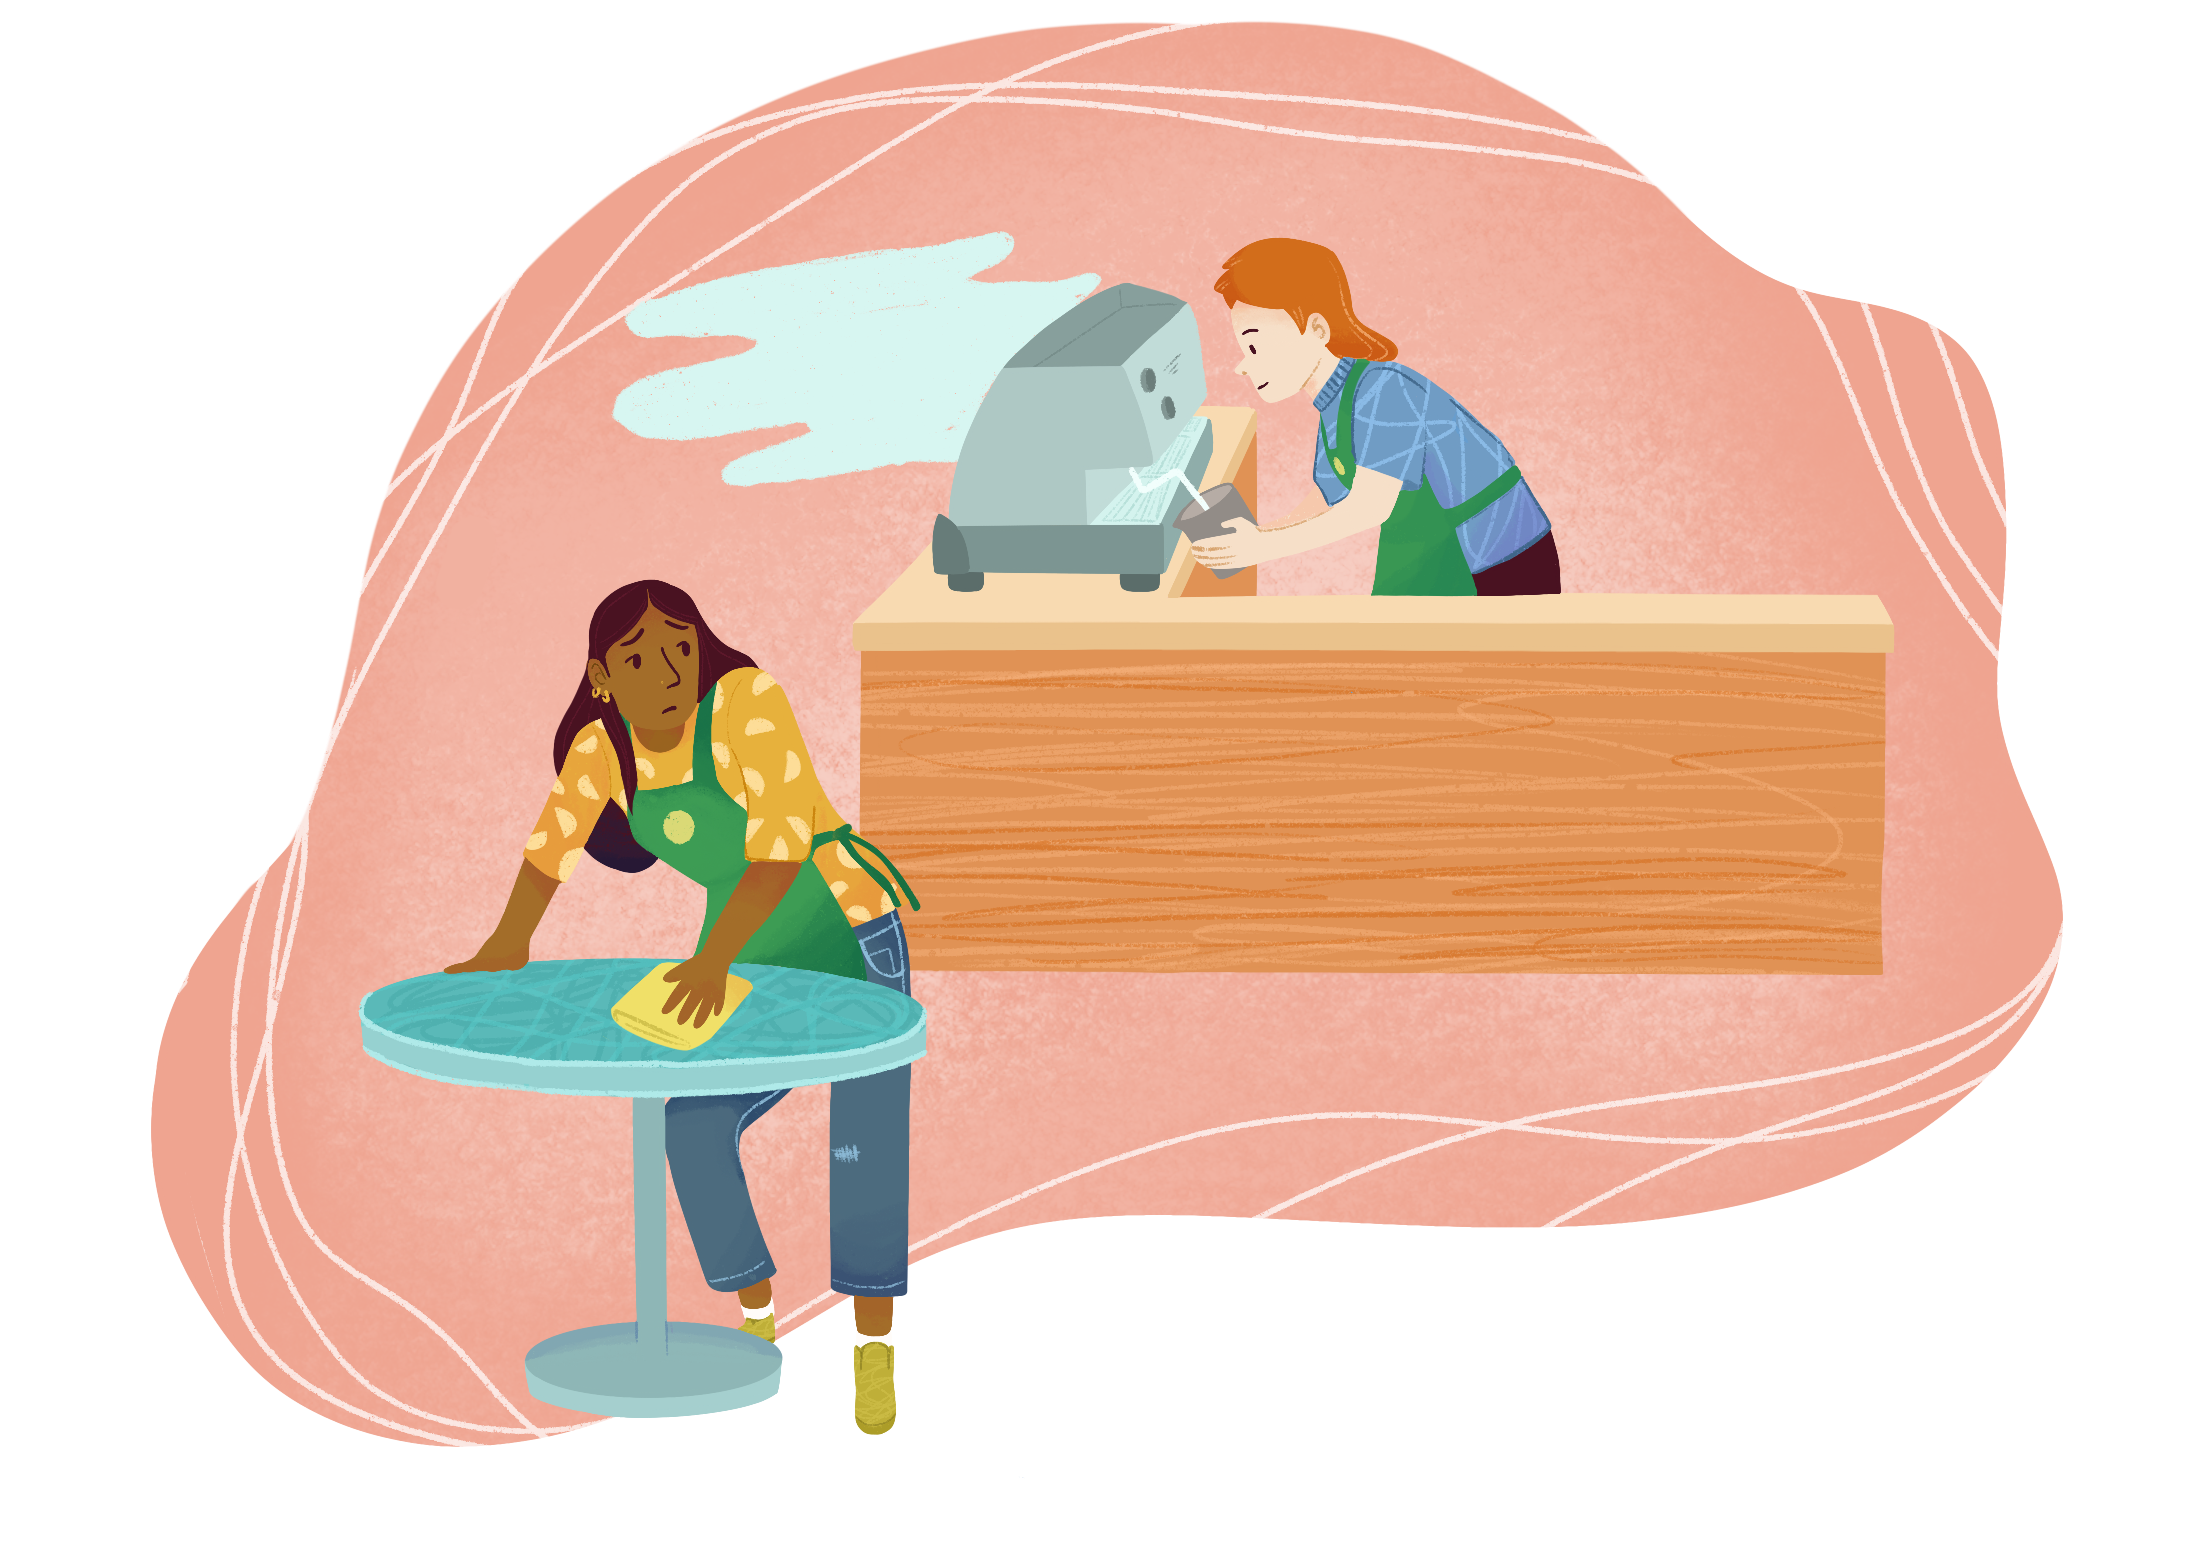 Grace, who has dark brown skin and long black hair, is cleaning a table at a coffee shop. She has a pained expression on her face as she looks behind her at her co-worker. Her co-worker, who is white, is steaming milk on a coffee machine.